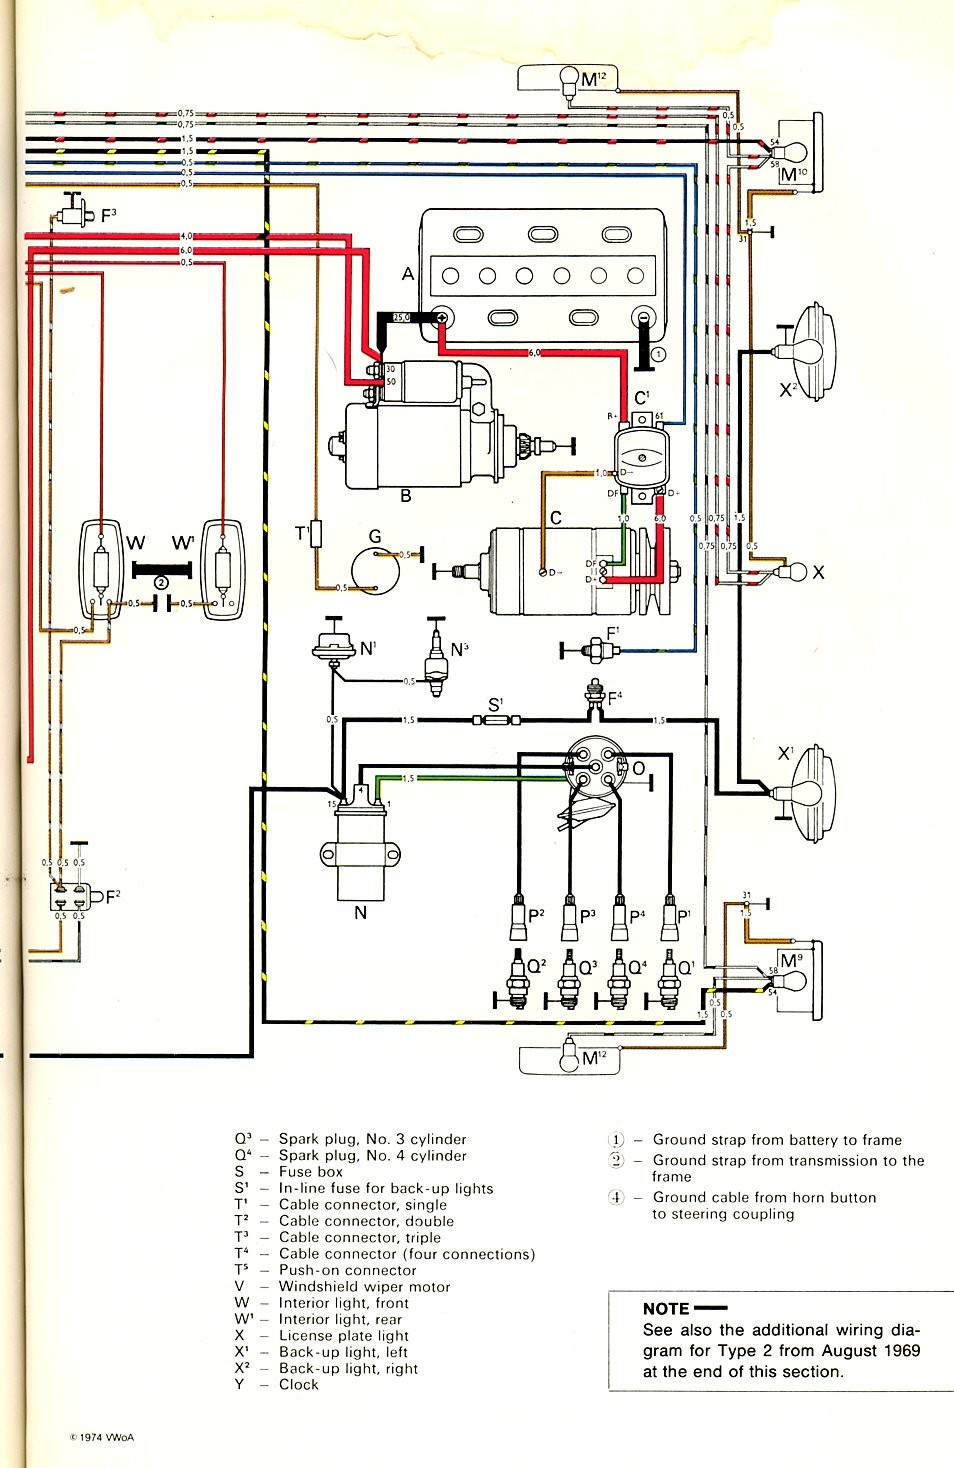 vw alternator wiring diagram best of wiring diagram image rh mainetreasurechest com 1974 Super Beetle Wiring Diagram 1972 Volkswagen Beetle Wiring Diagram